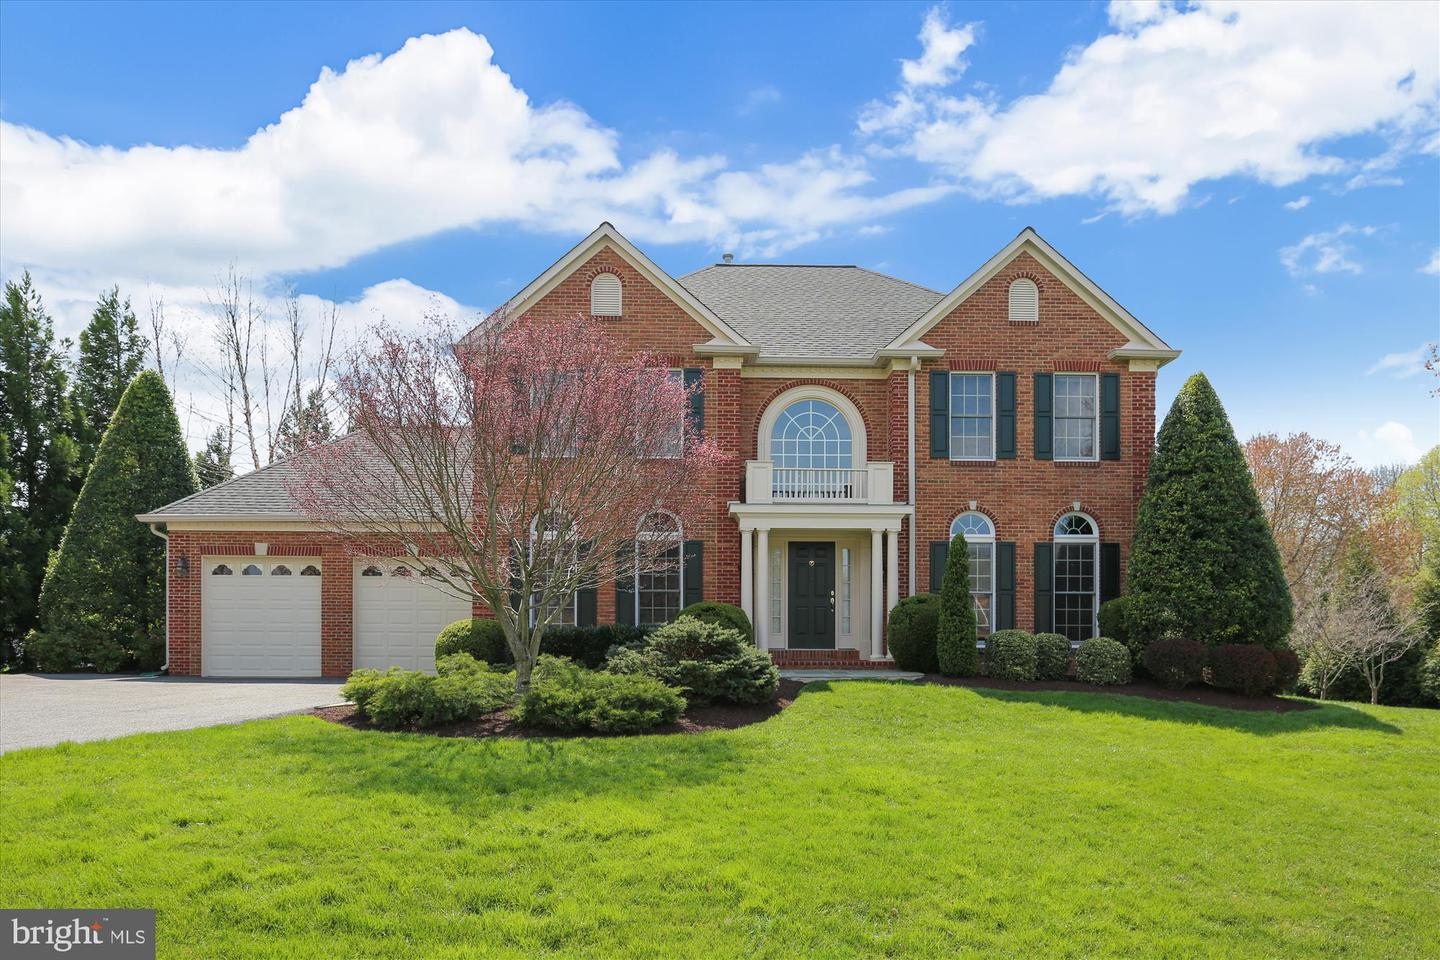 15100 WHITETAIL WAY, GAITHERSBURG, Maryland 20878, 4 Bedrooms Bedrooms, ,4 BathroomsBathrooms,Single Family,For Sale,15100 WHITETAIL WAY,MDMC751572